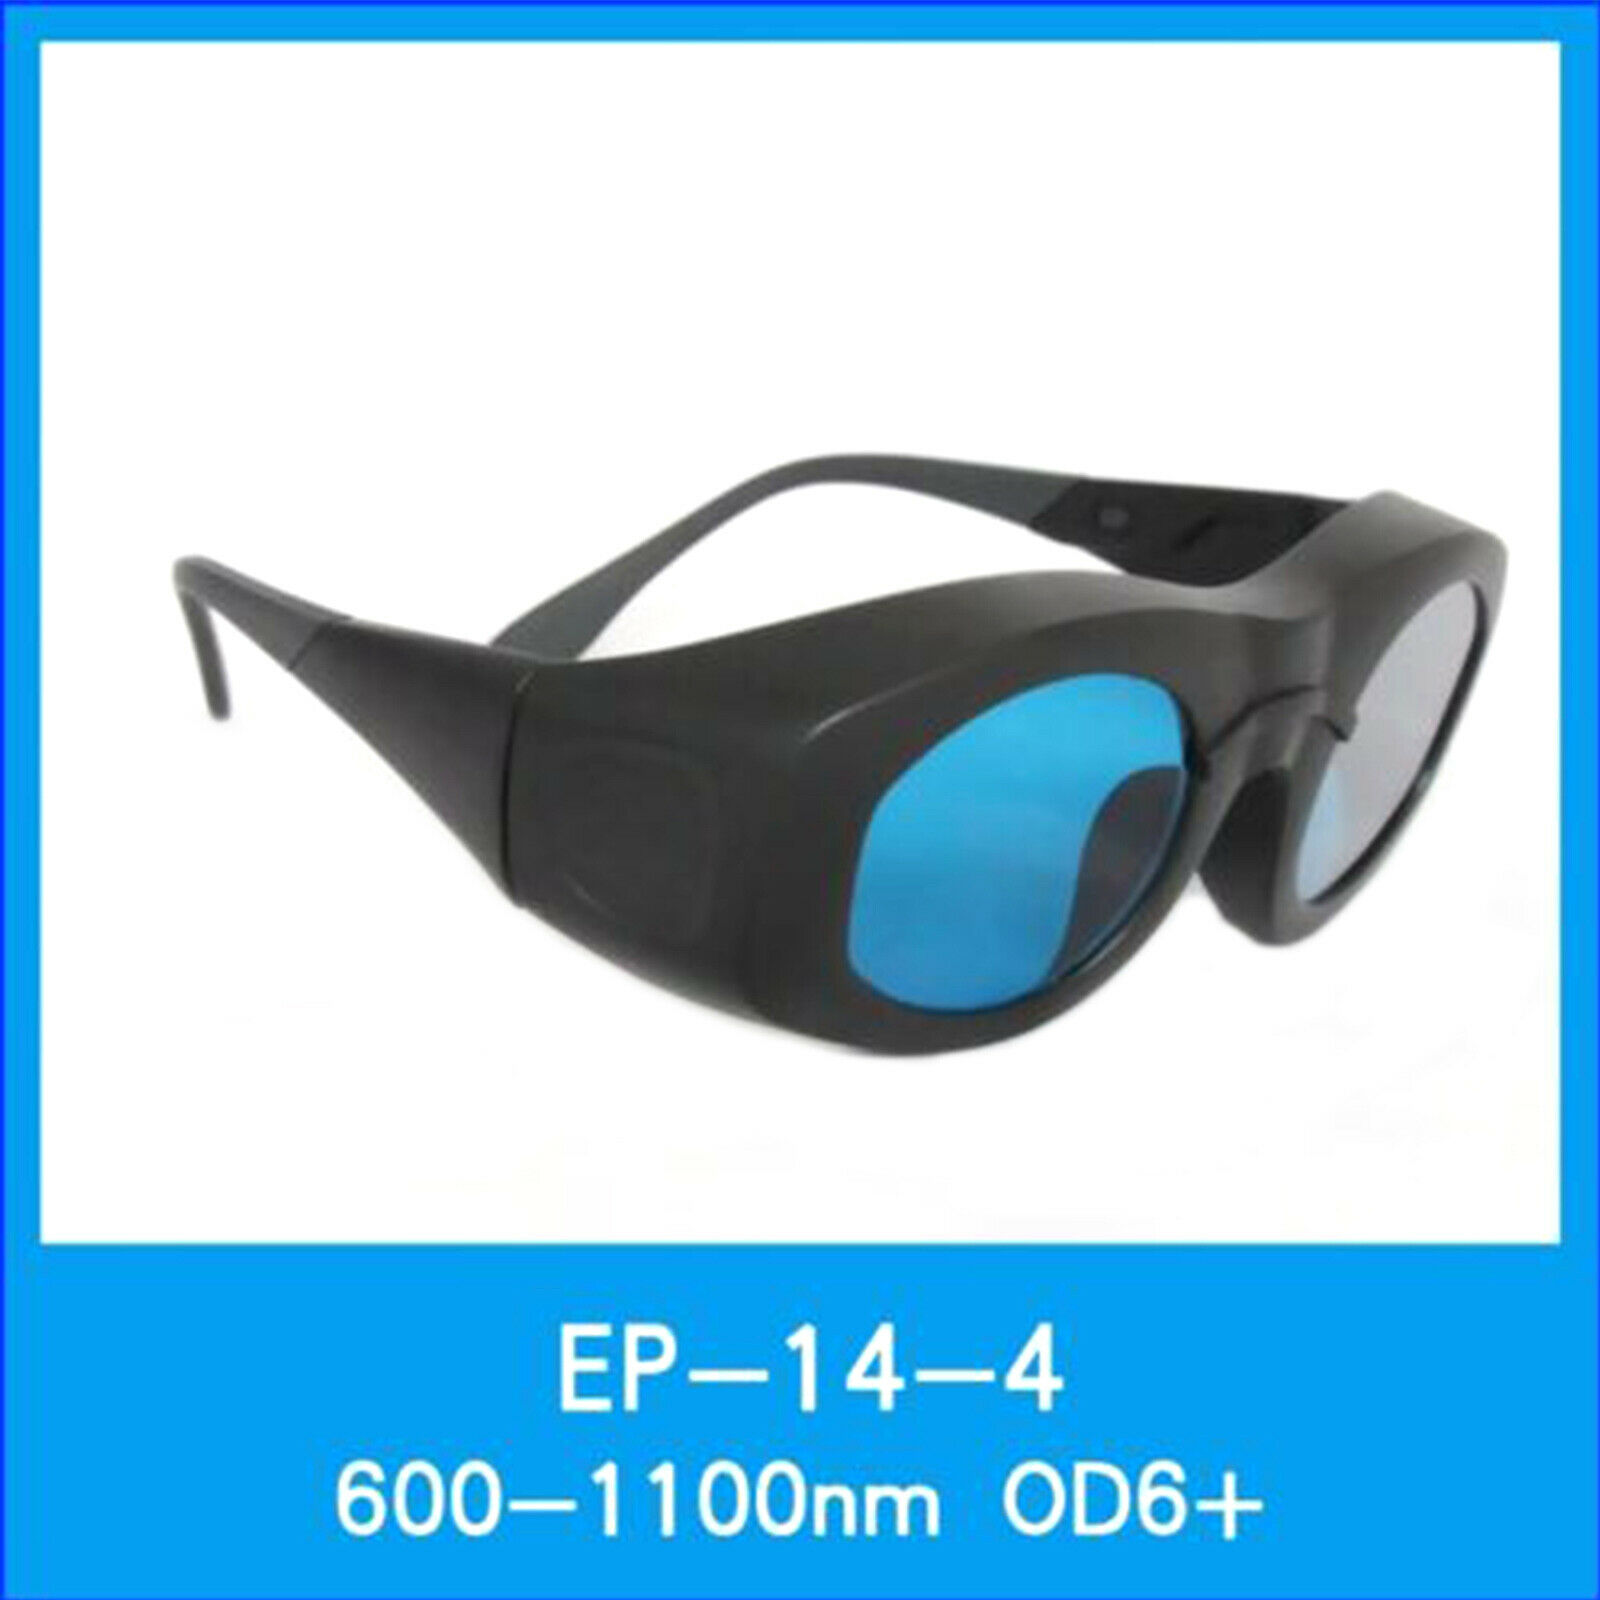 CE Red Infrared IR Laser Safety Protective Goggles 600nm-1100nm 1064nm OD6